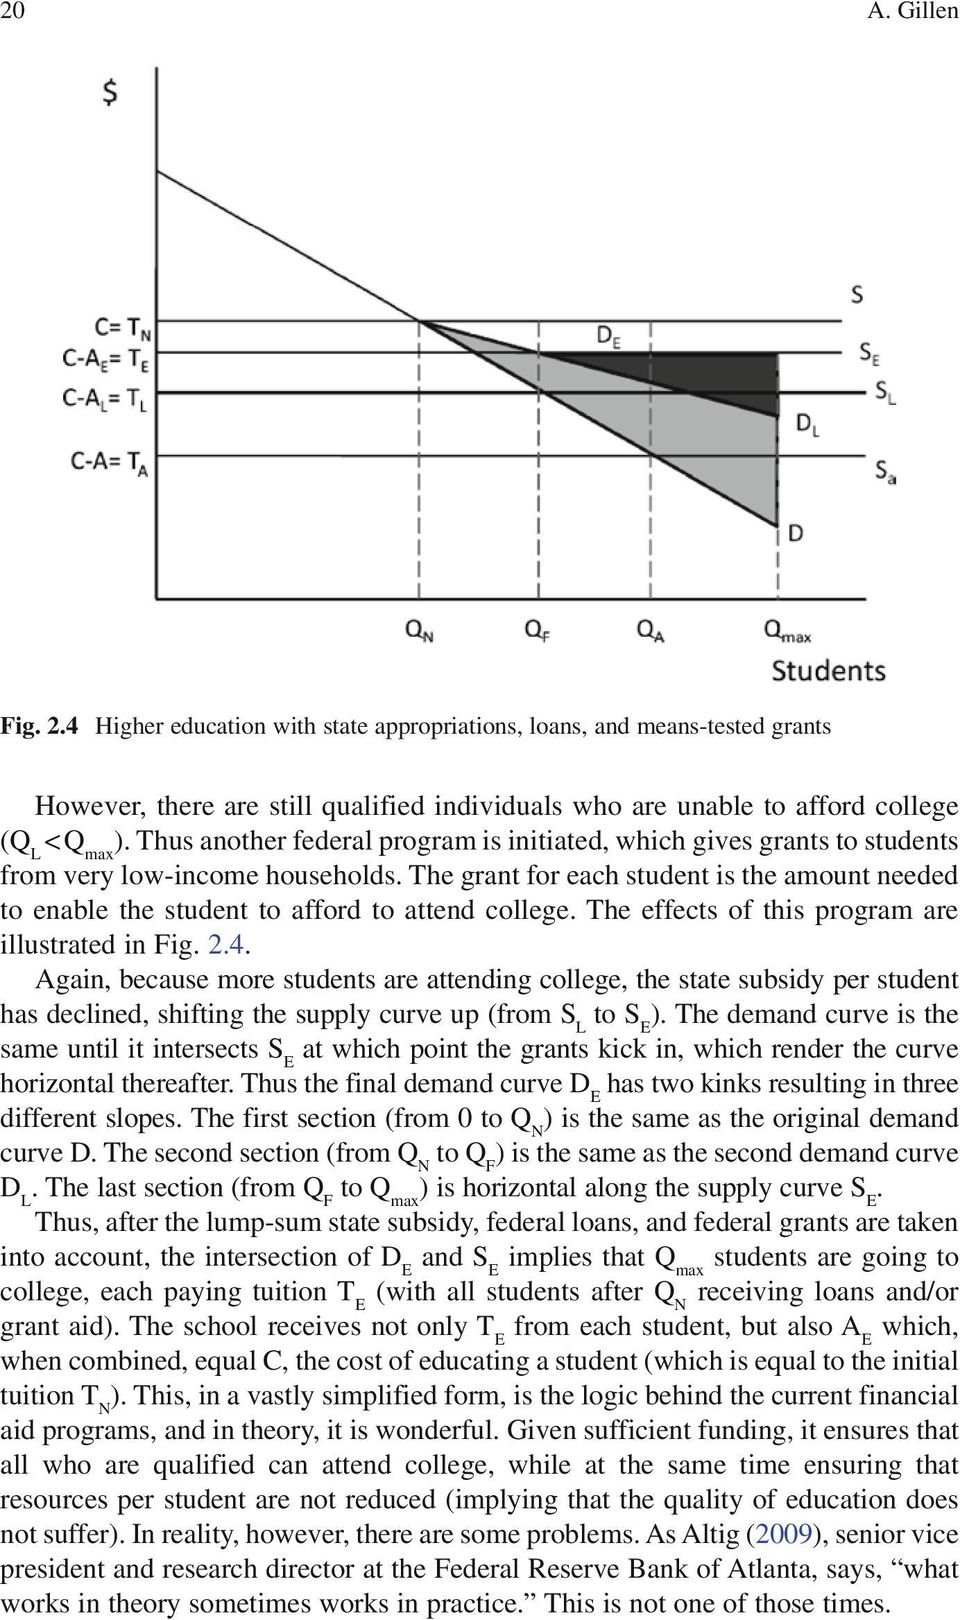 The grant for each student is the amount needed to enable the student to afford to attend college. The effects of this program are illustrated in Fig. 2.4.